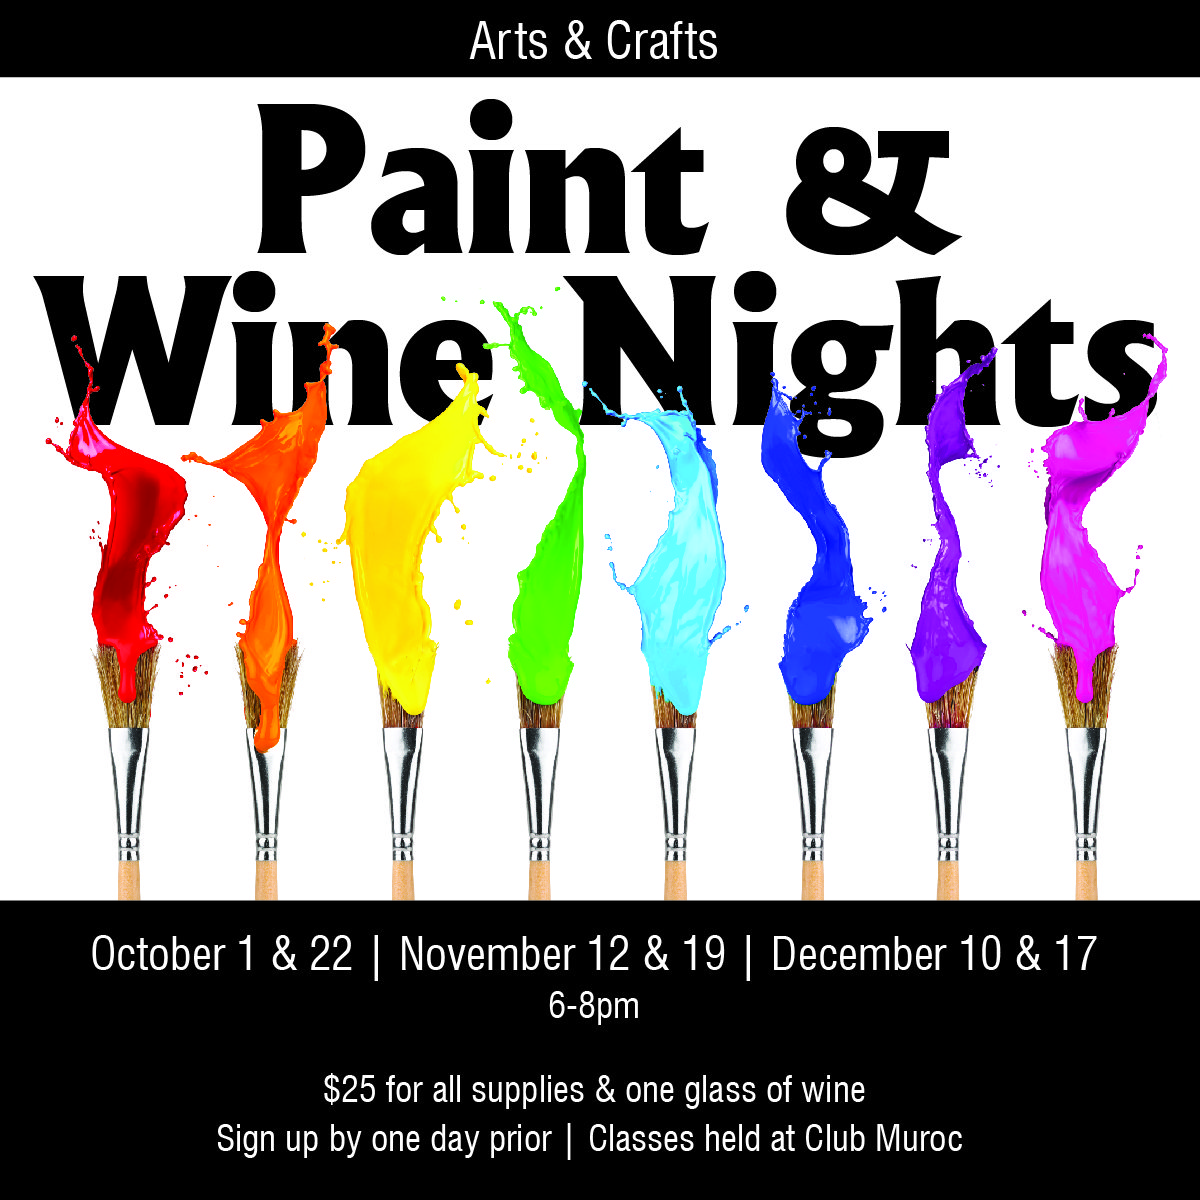 Edwards Air Force Base - Arts & Crafts - Paint Nights